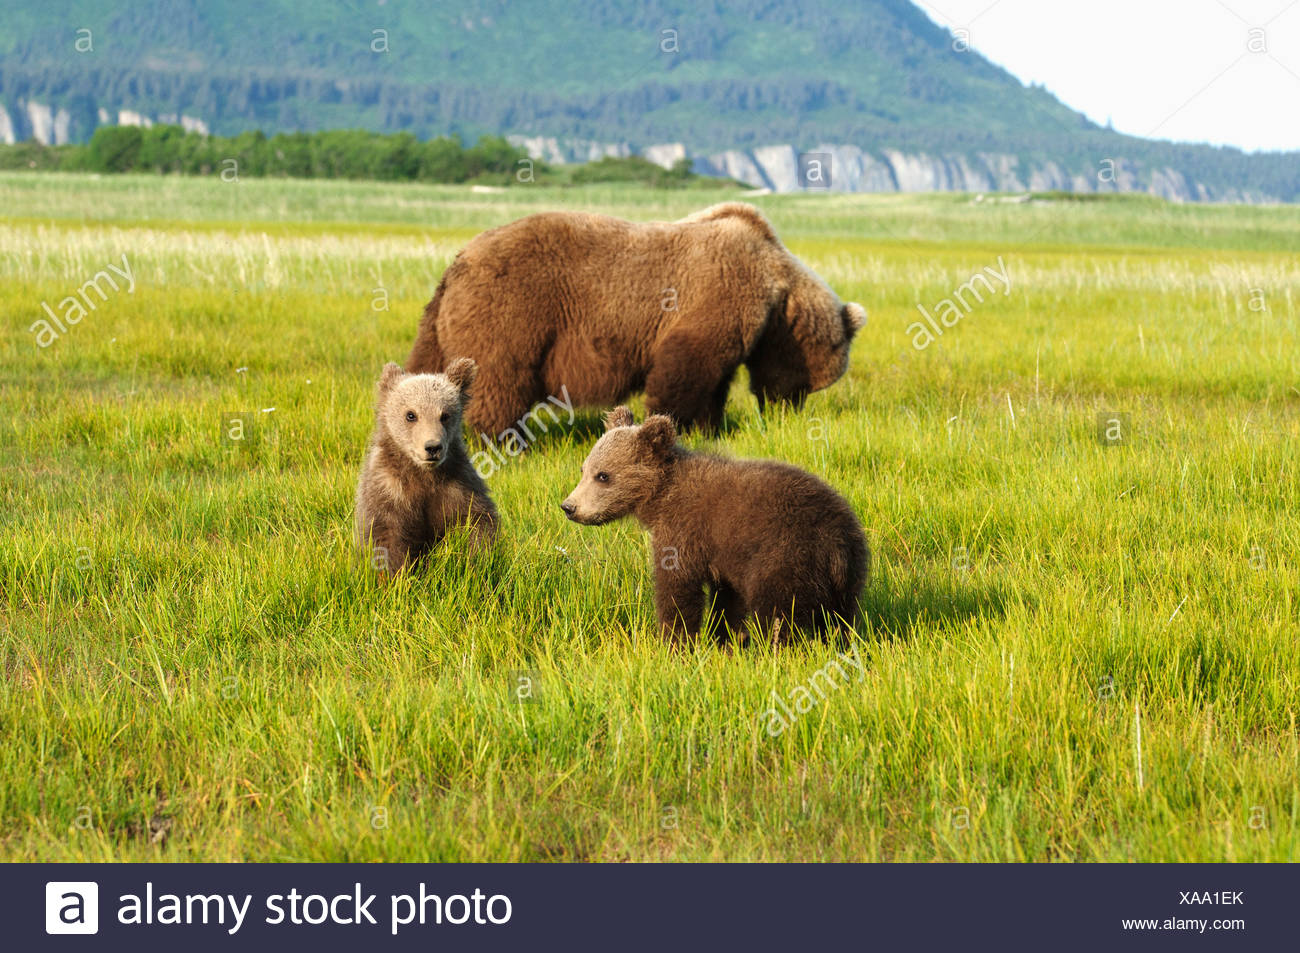 A Brown Grizzly Bear (Ursus Arctos Horribilis) With Cubs; Alaska, United States Of America - Stock Image